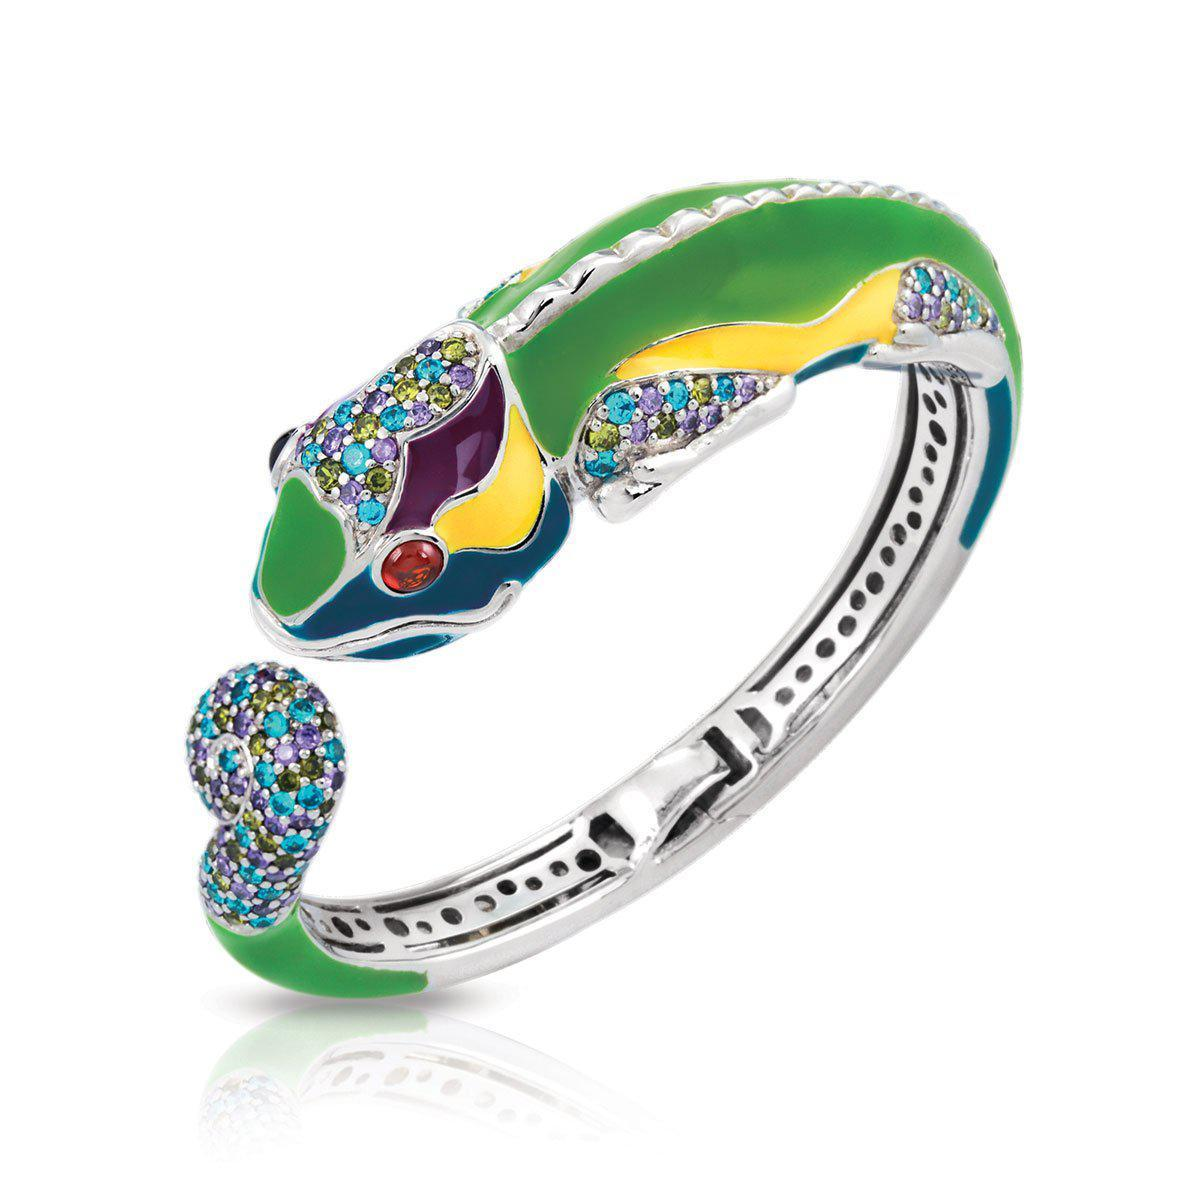 Chameleon Bangle by Belle Etoile